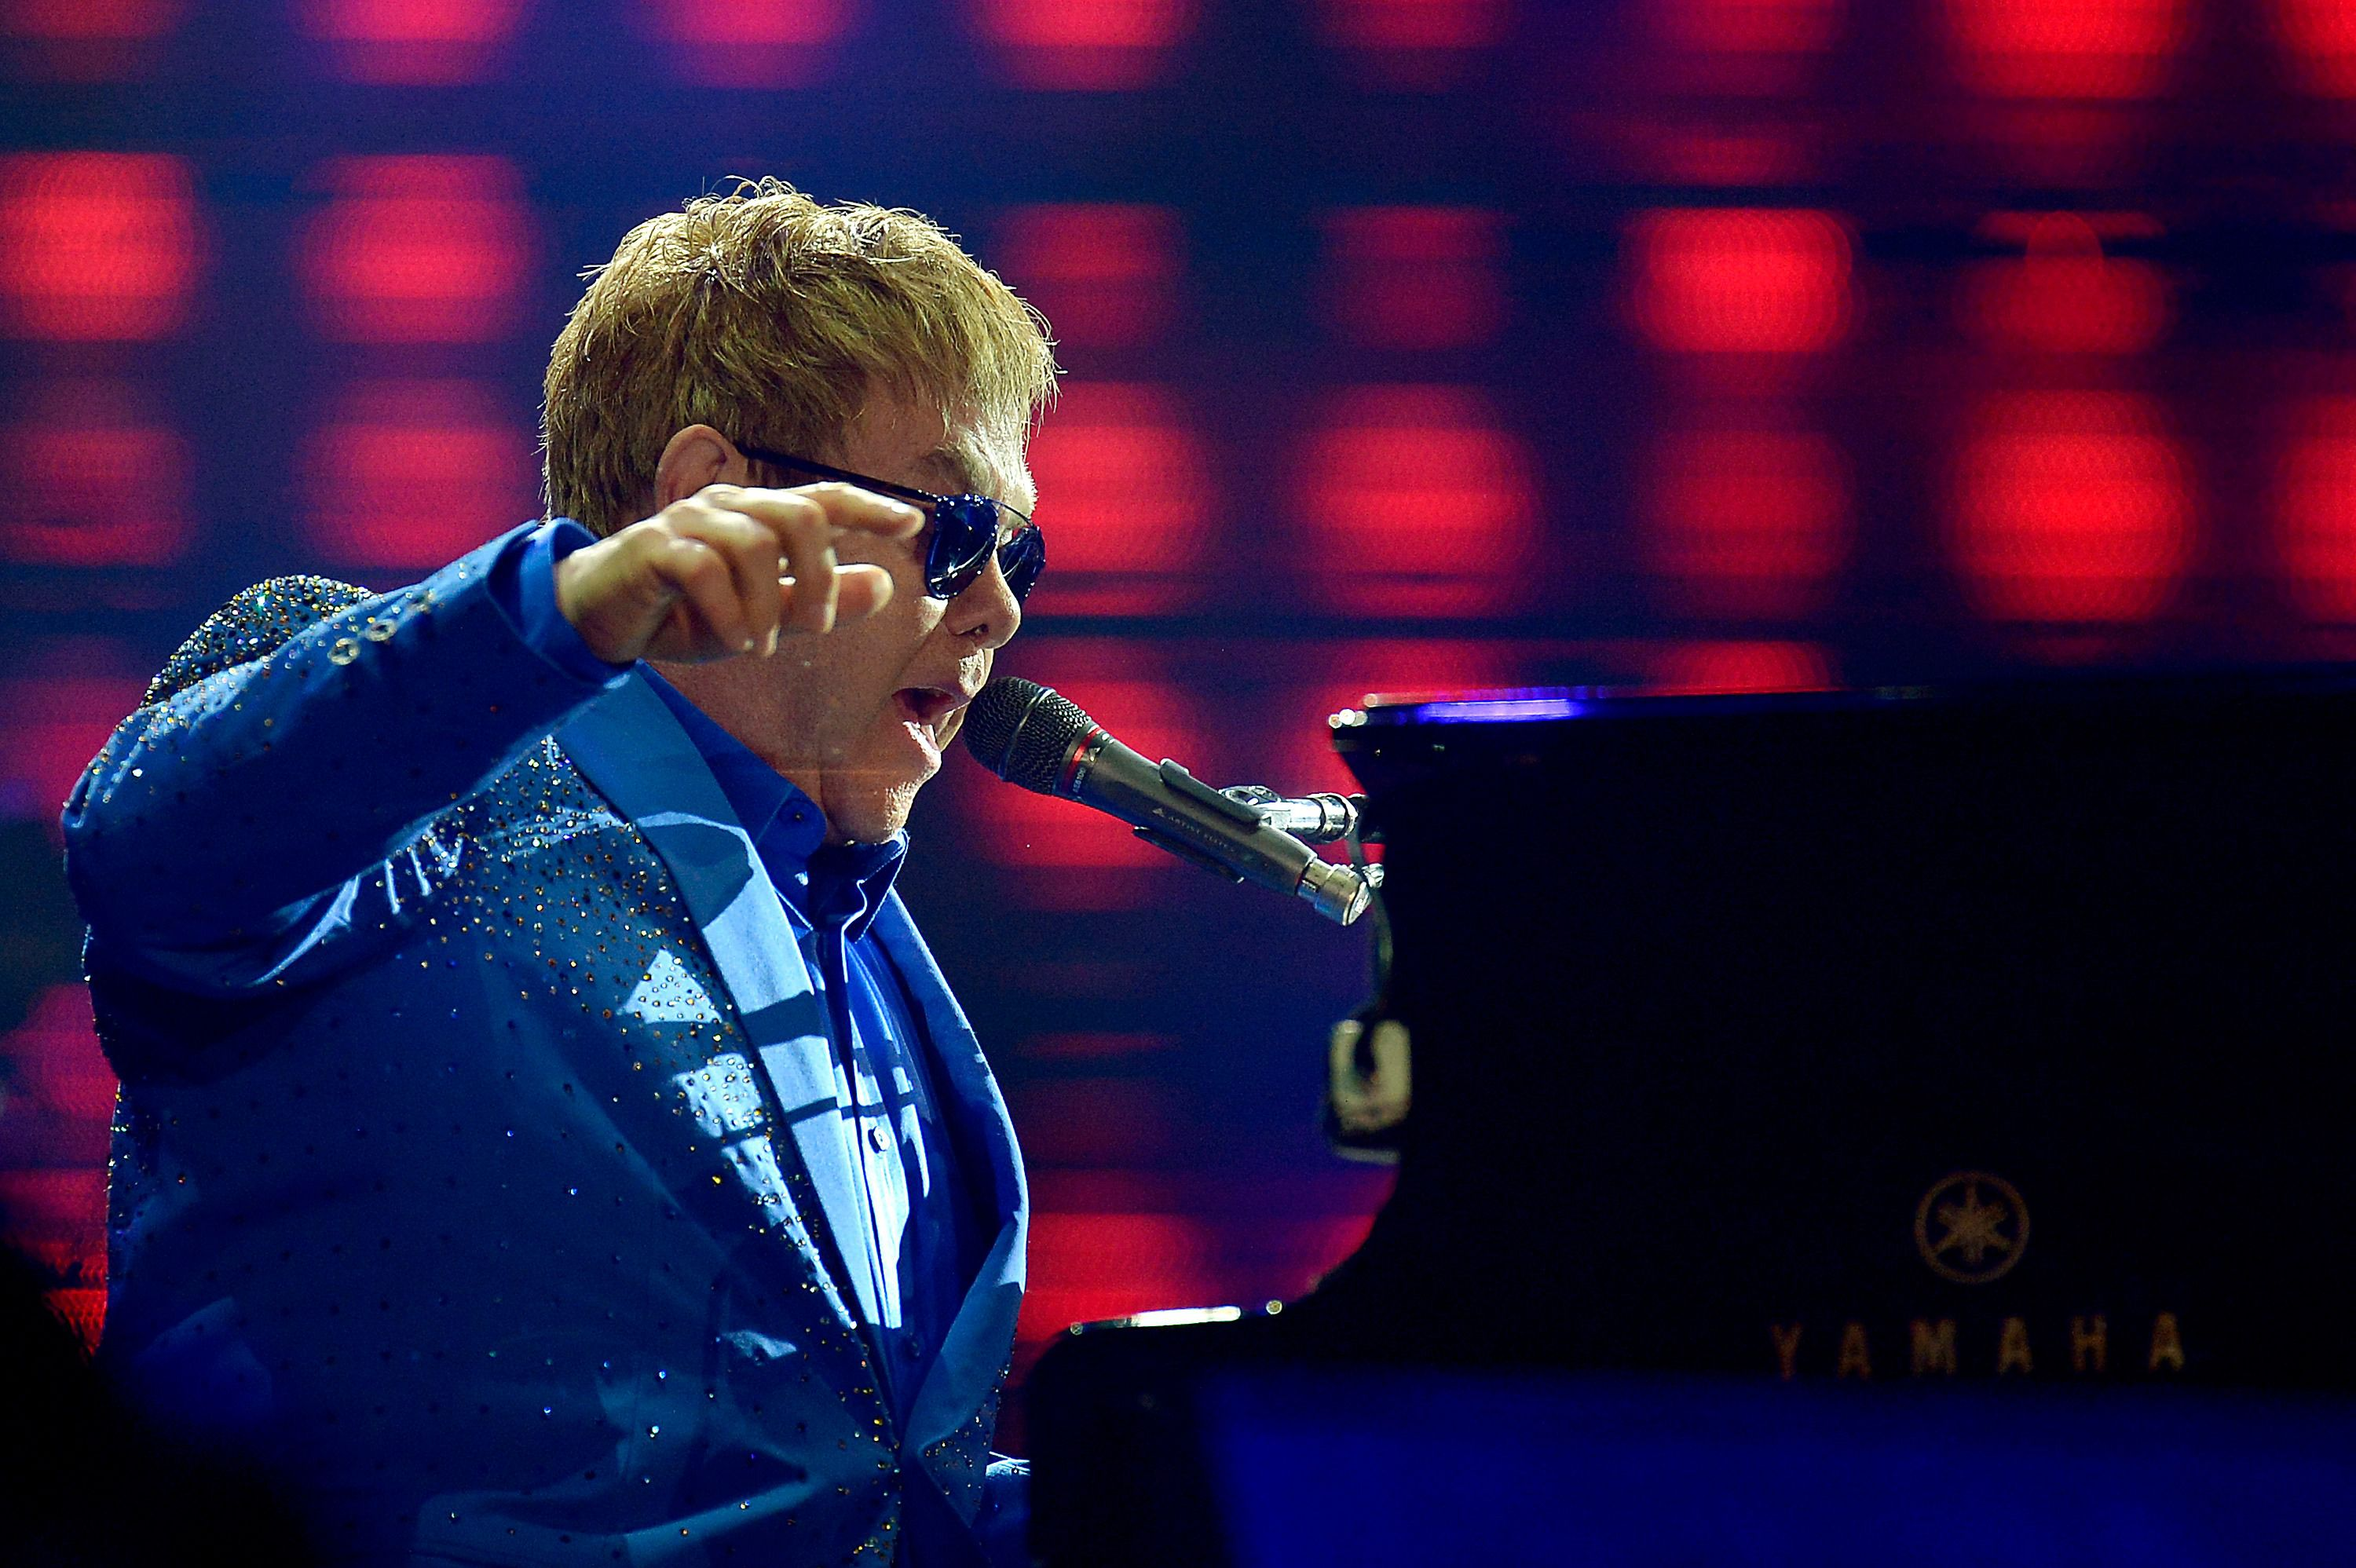 Elton John will headline June's Life Festival.